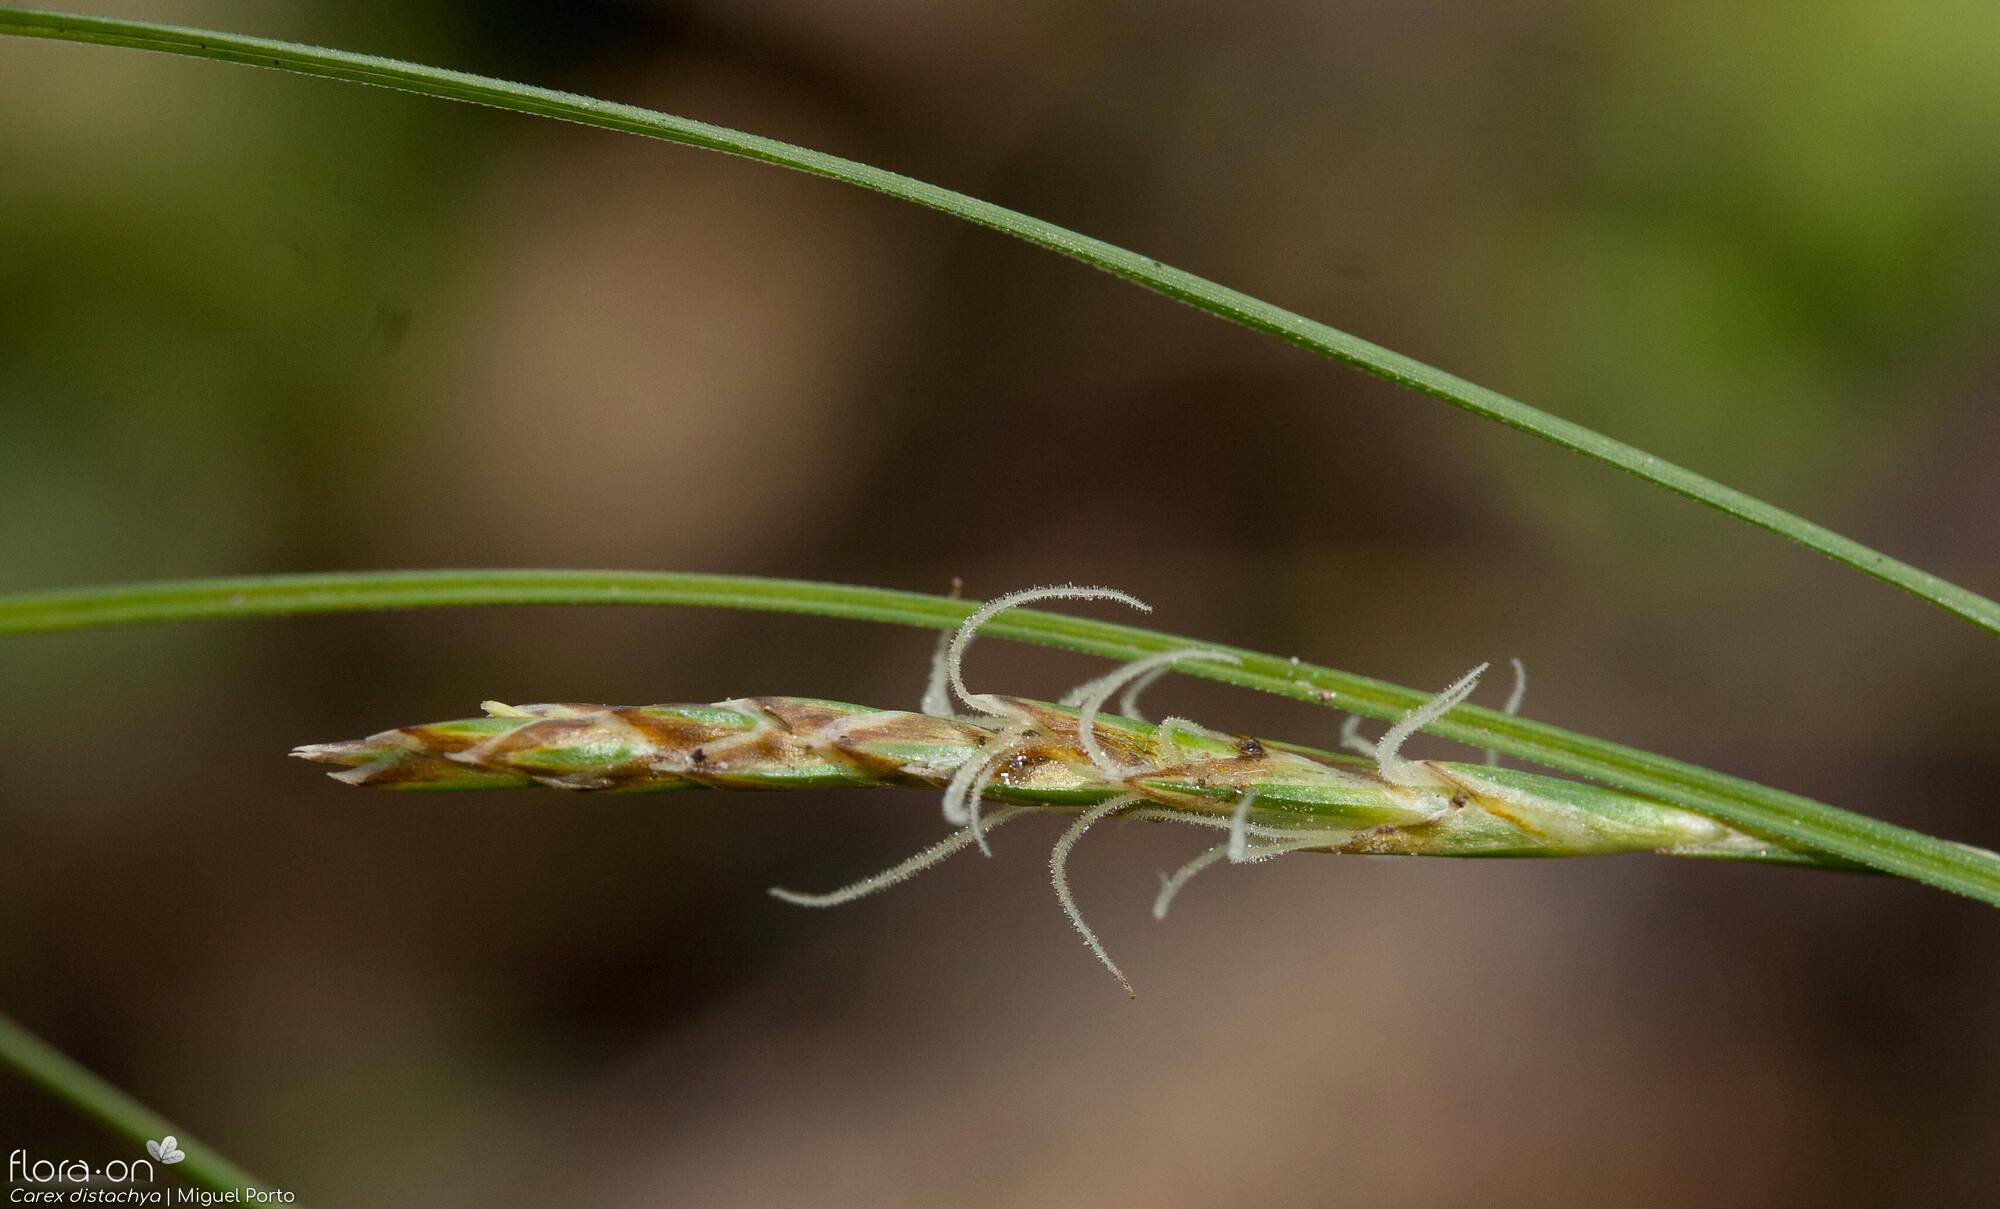 Carex distachya - Flor (close-up) | Miguel Porto; CC BY-NC 4.0